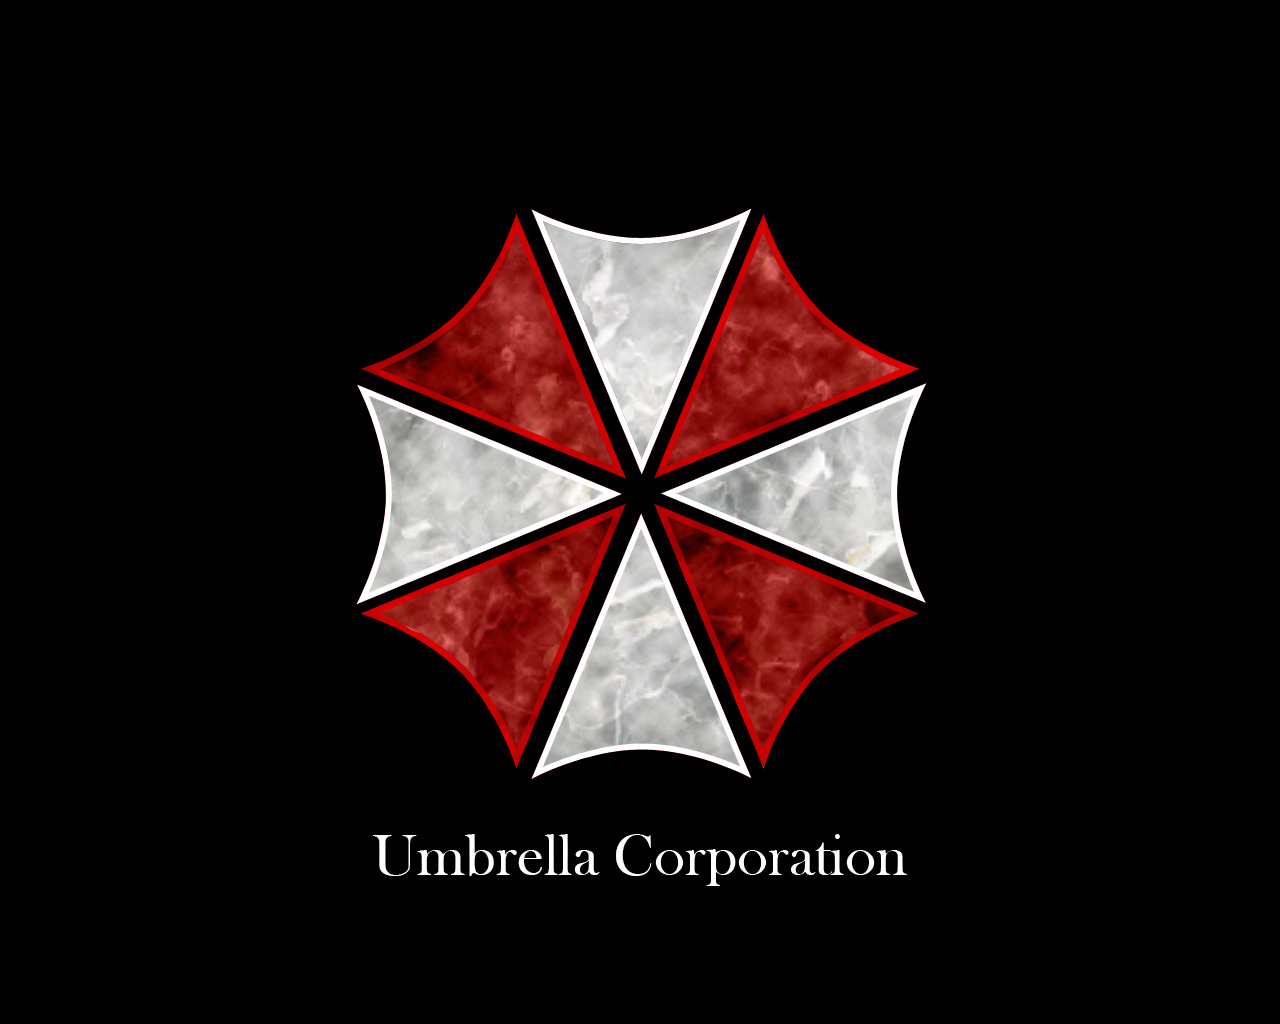 Umbrella Picture - Chapter 11: Seasons and Celebrations